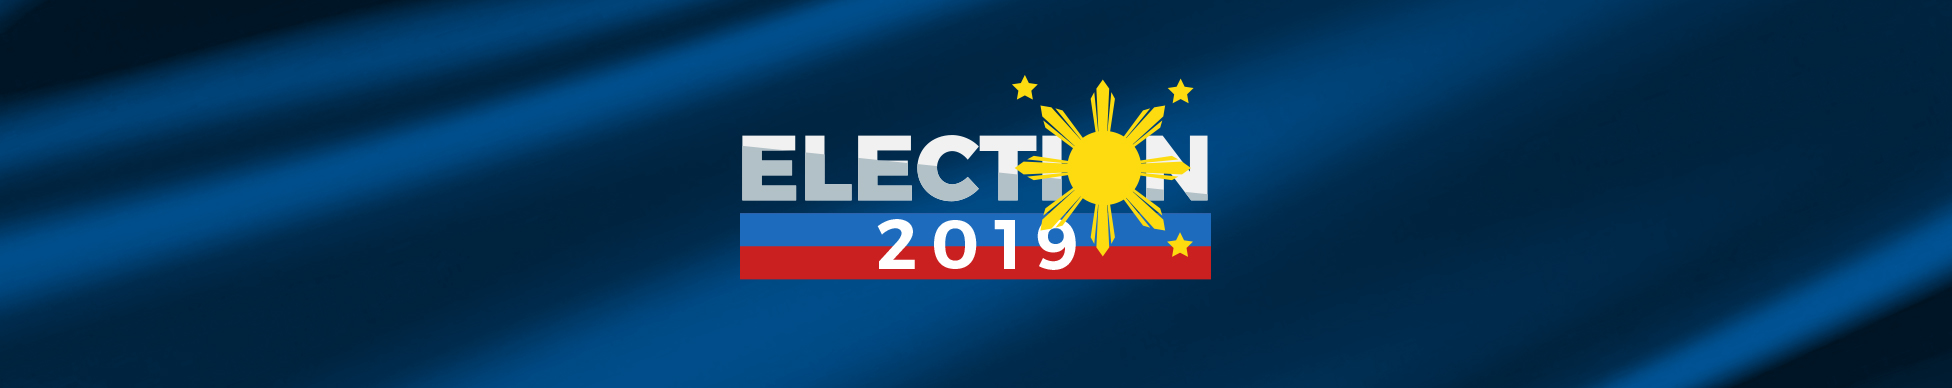 File SOCE on time, 2019 election bets told | Philstar com